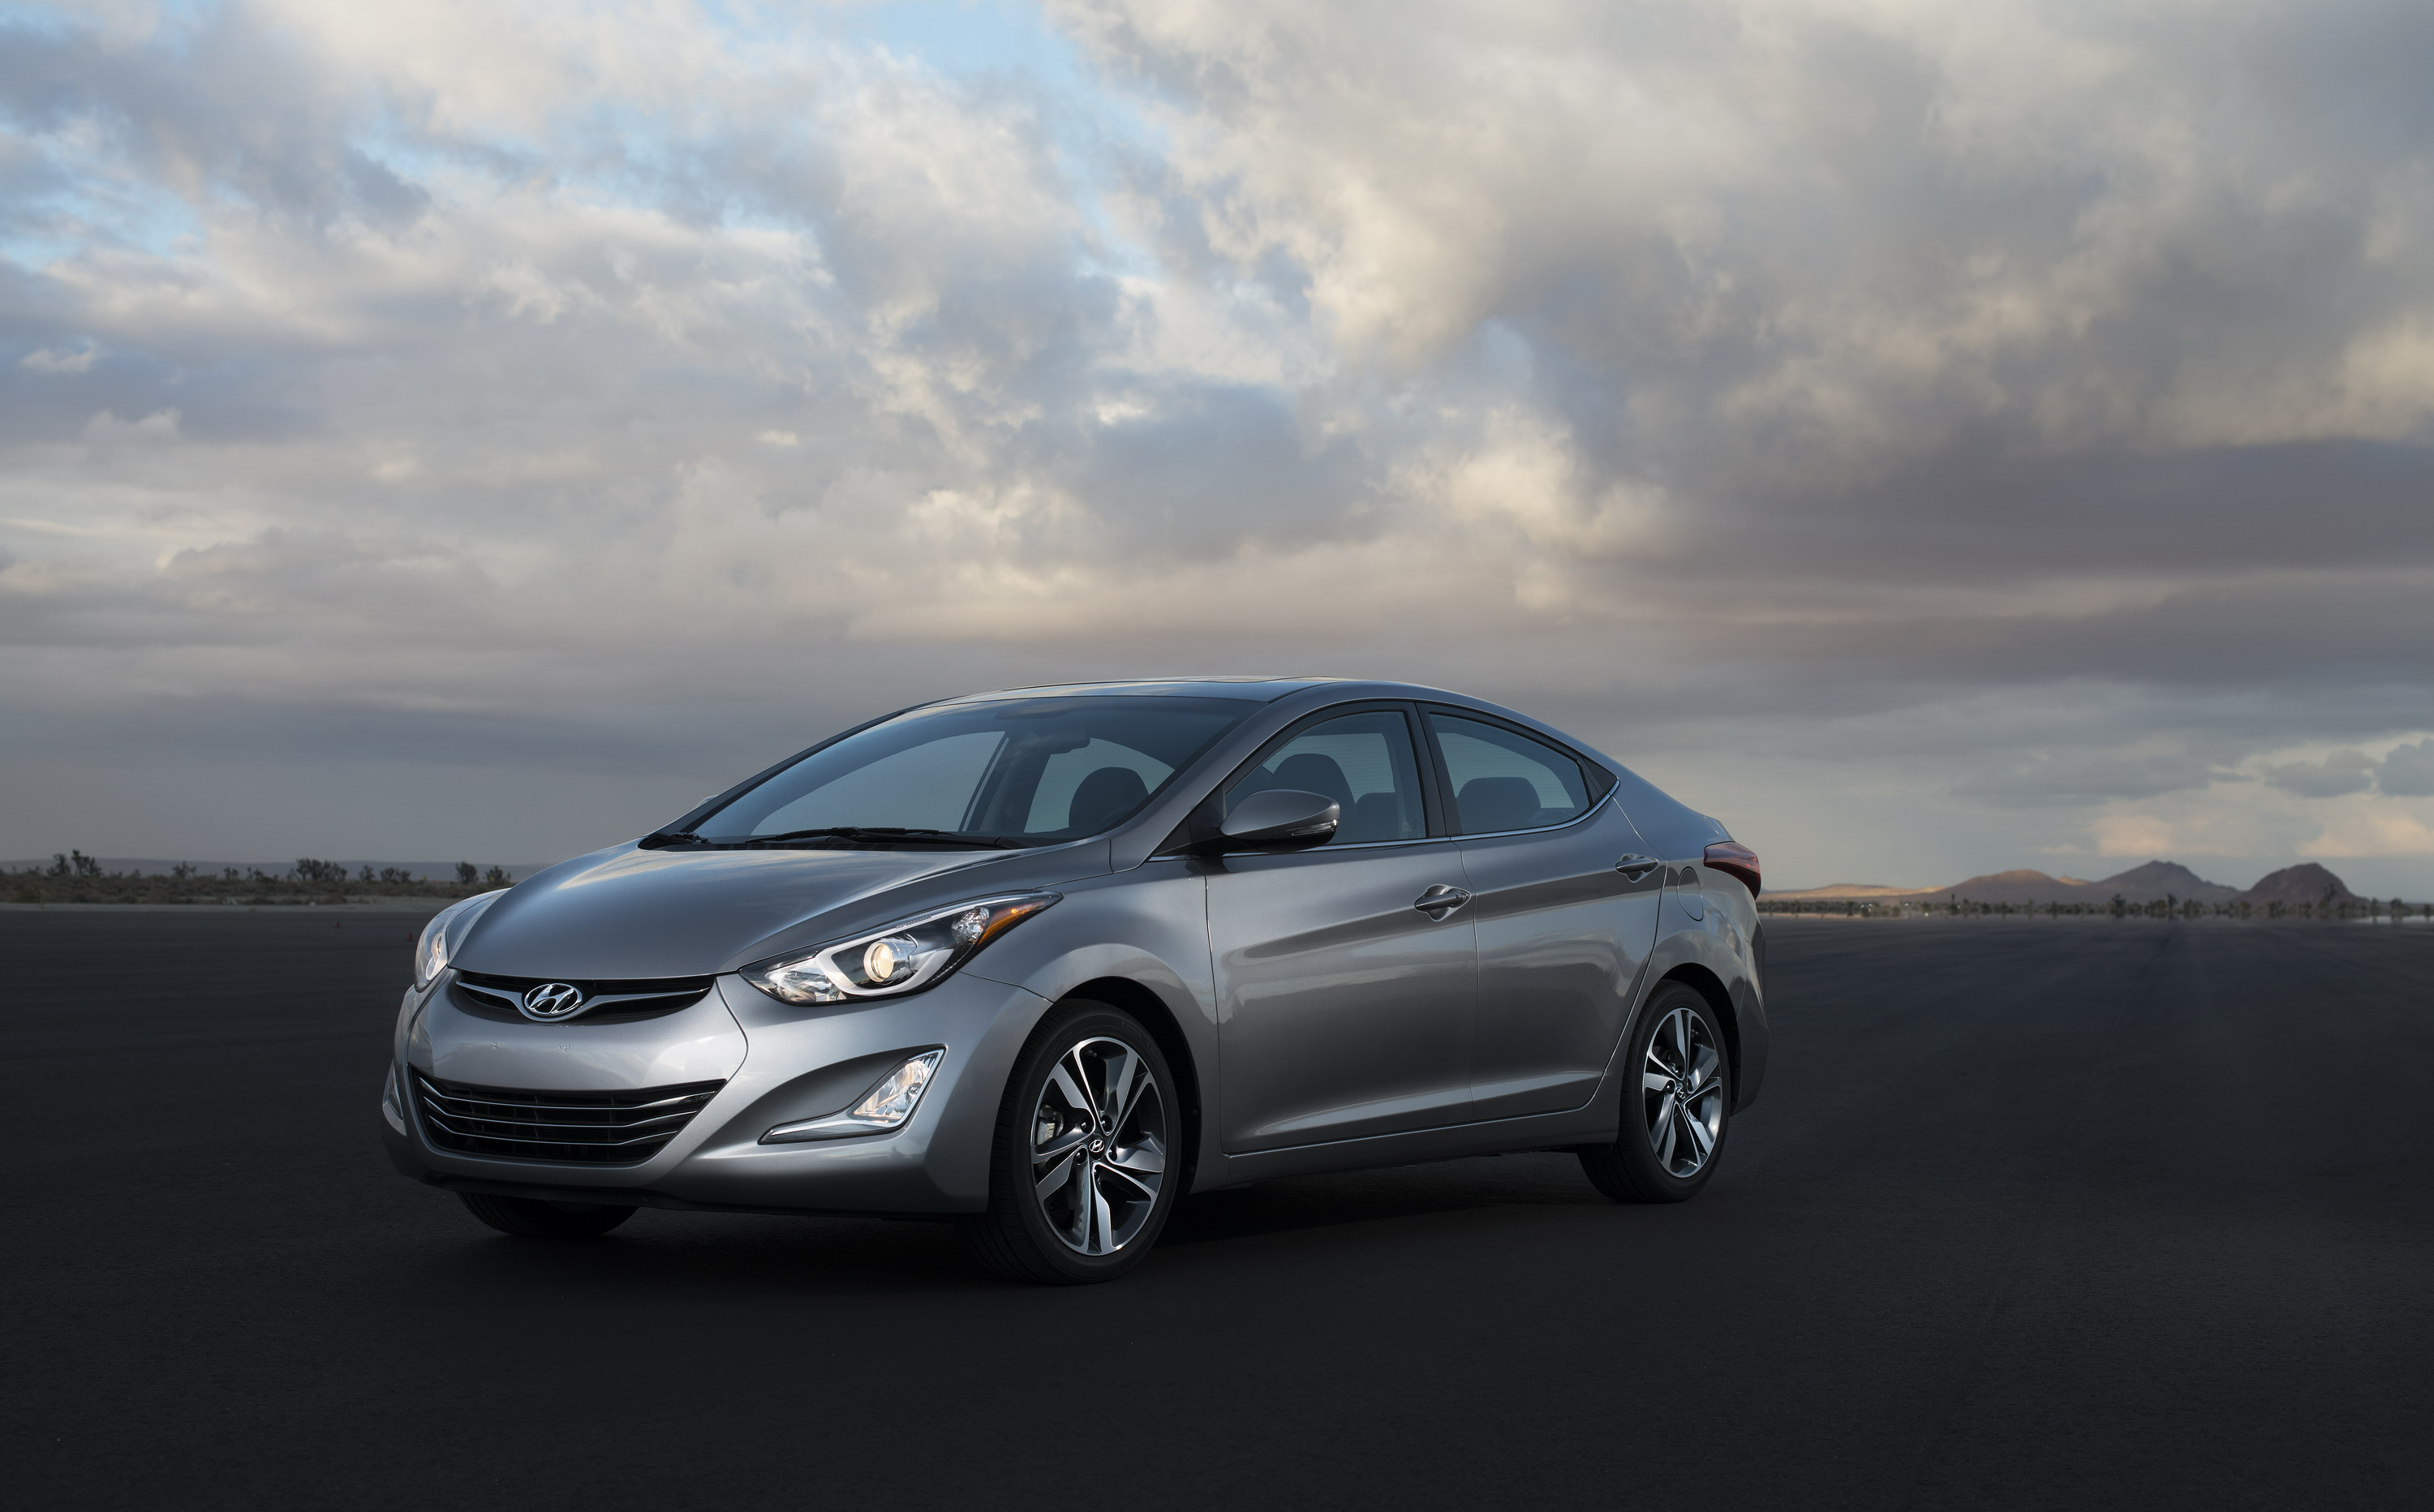 review elantra hyundai top speed cars